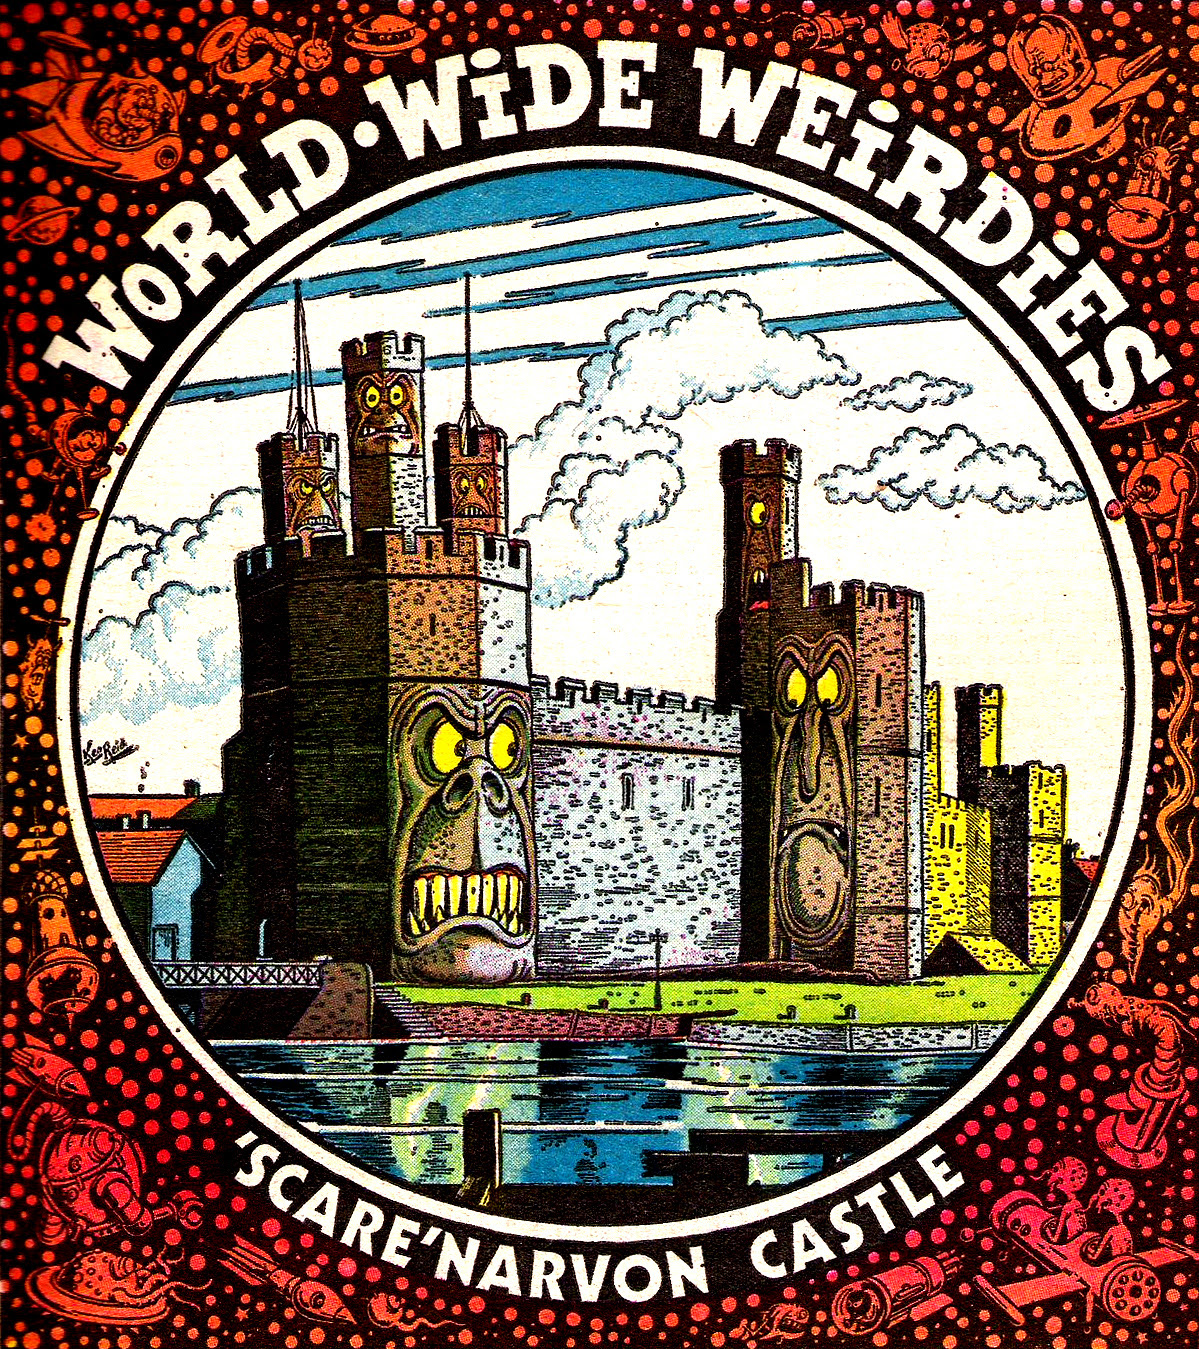 Ken Reid - World Wide Weirdies 38